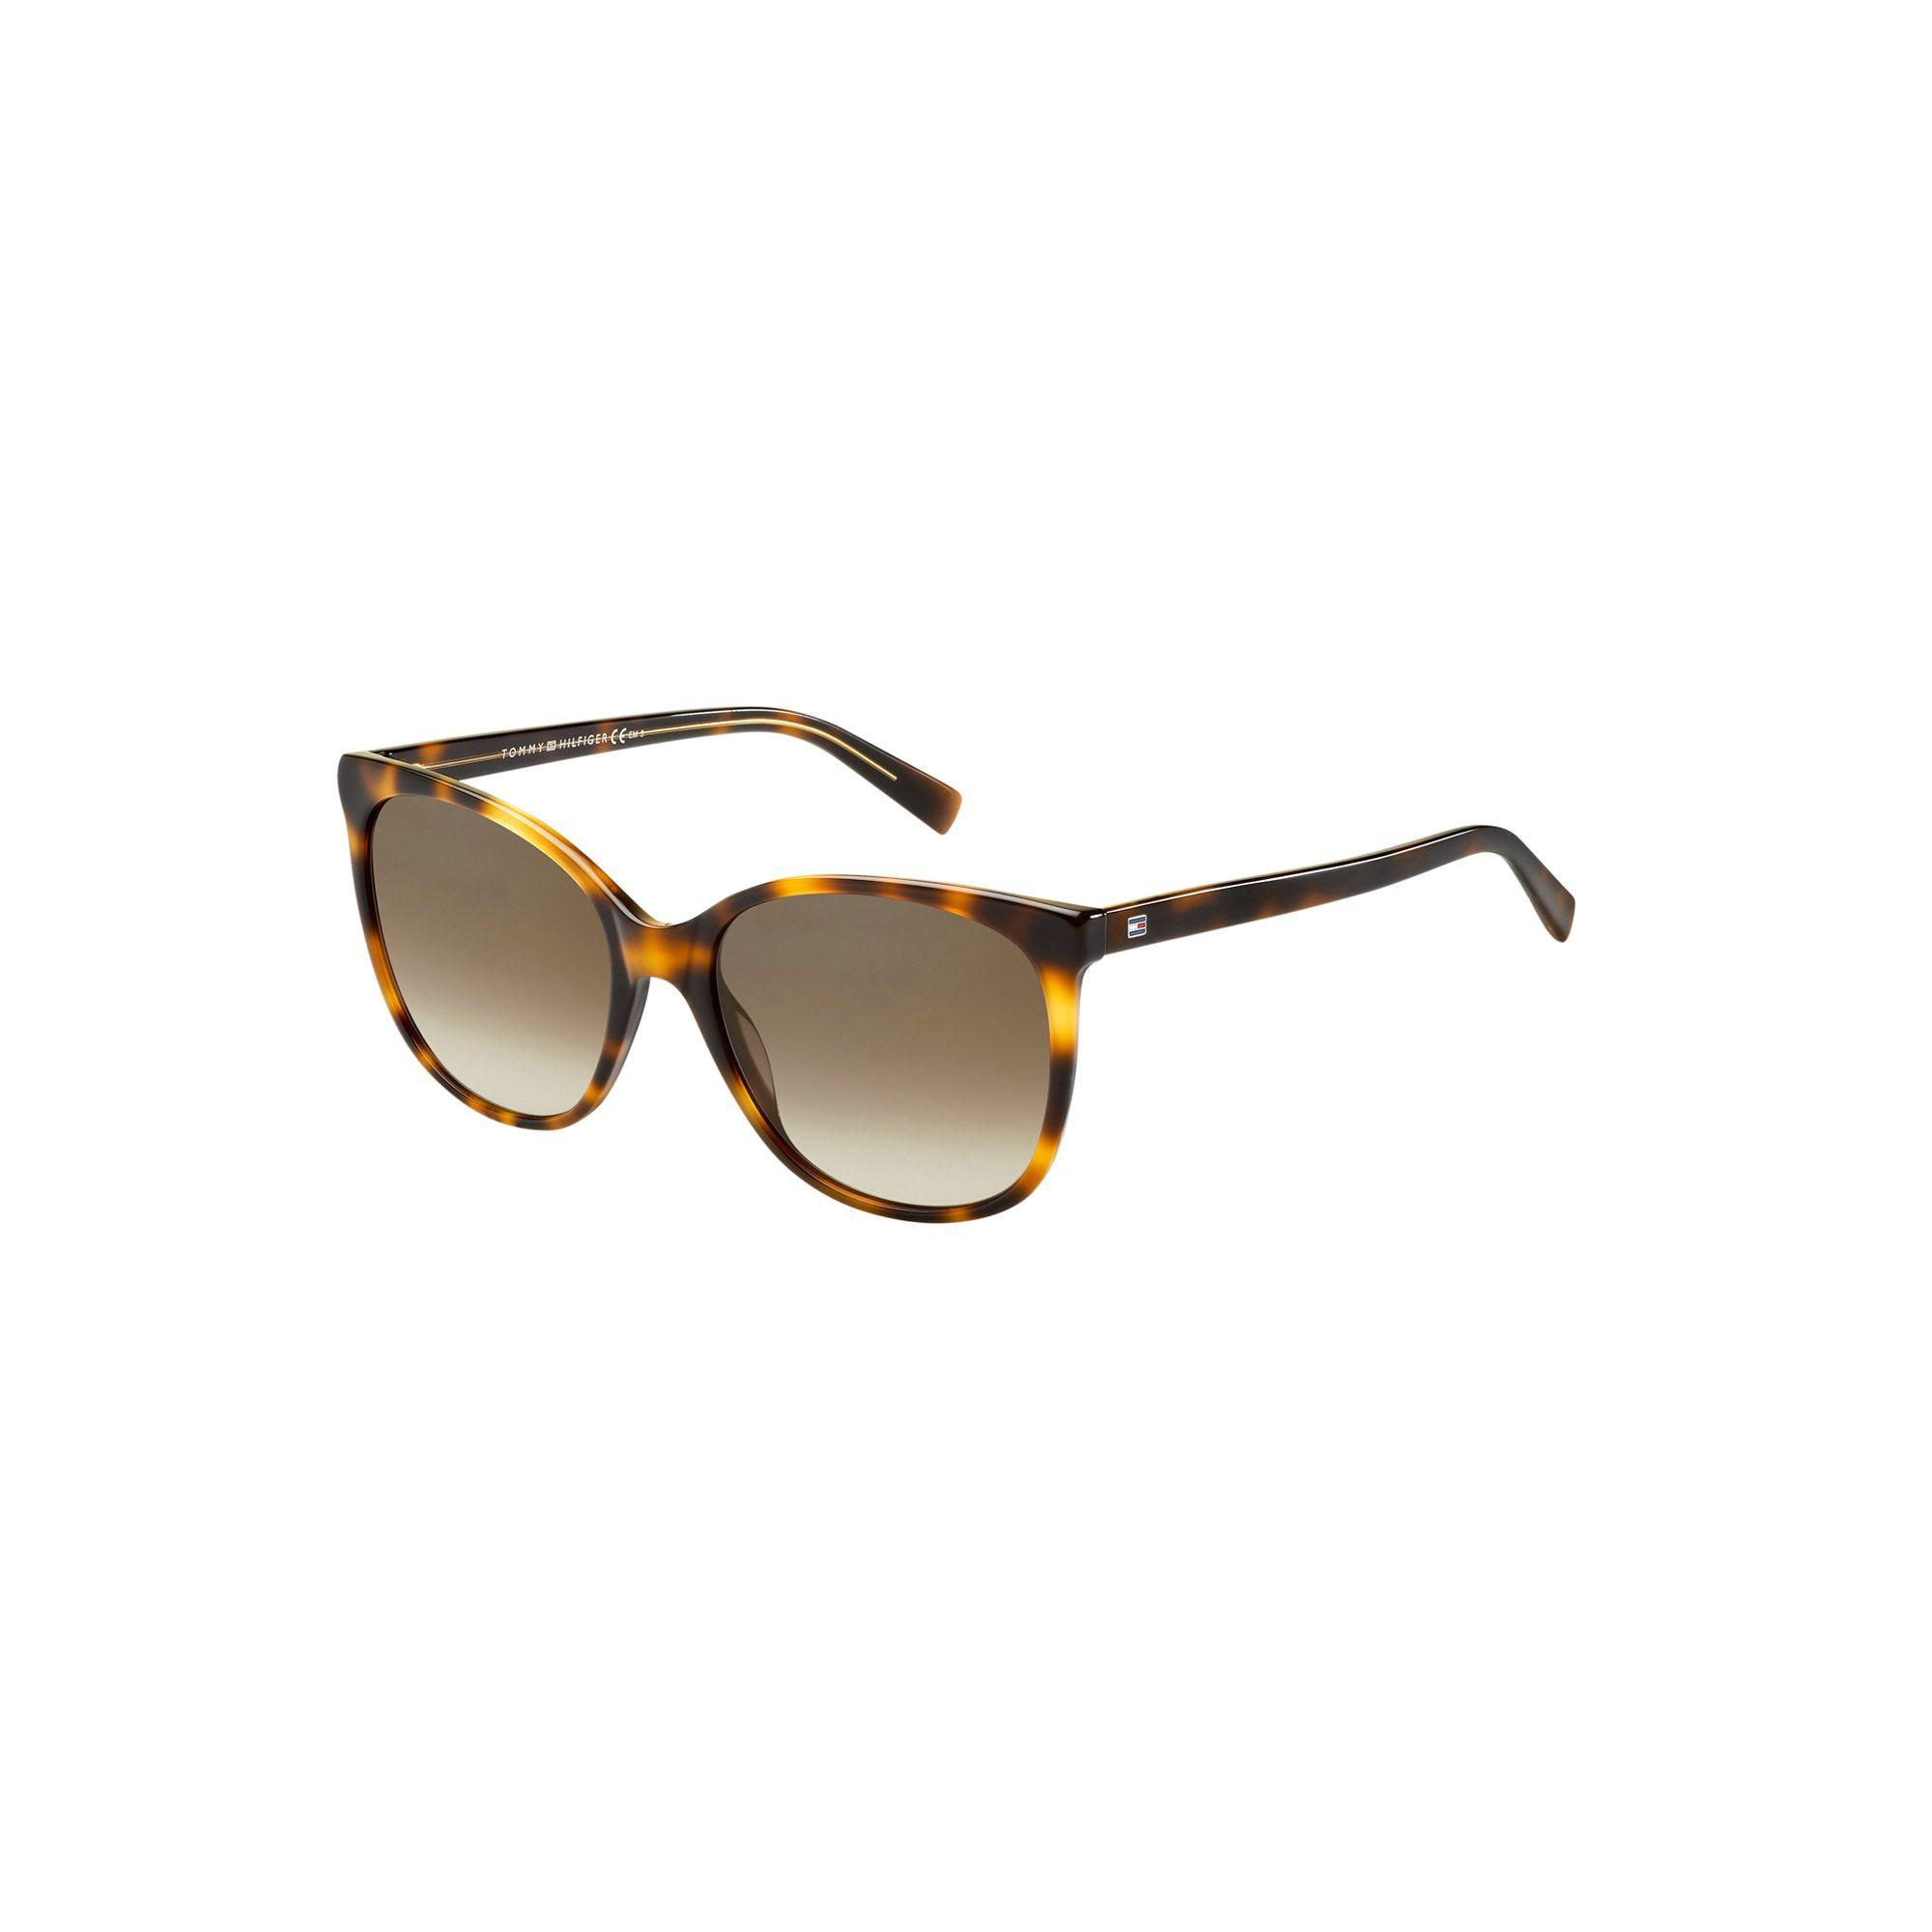 Tommy Hilfiger Oval Sunglasses - Havana Yellow